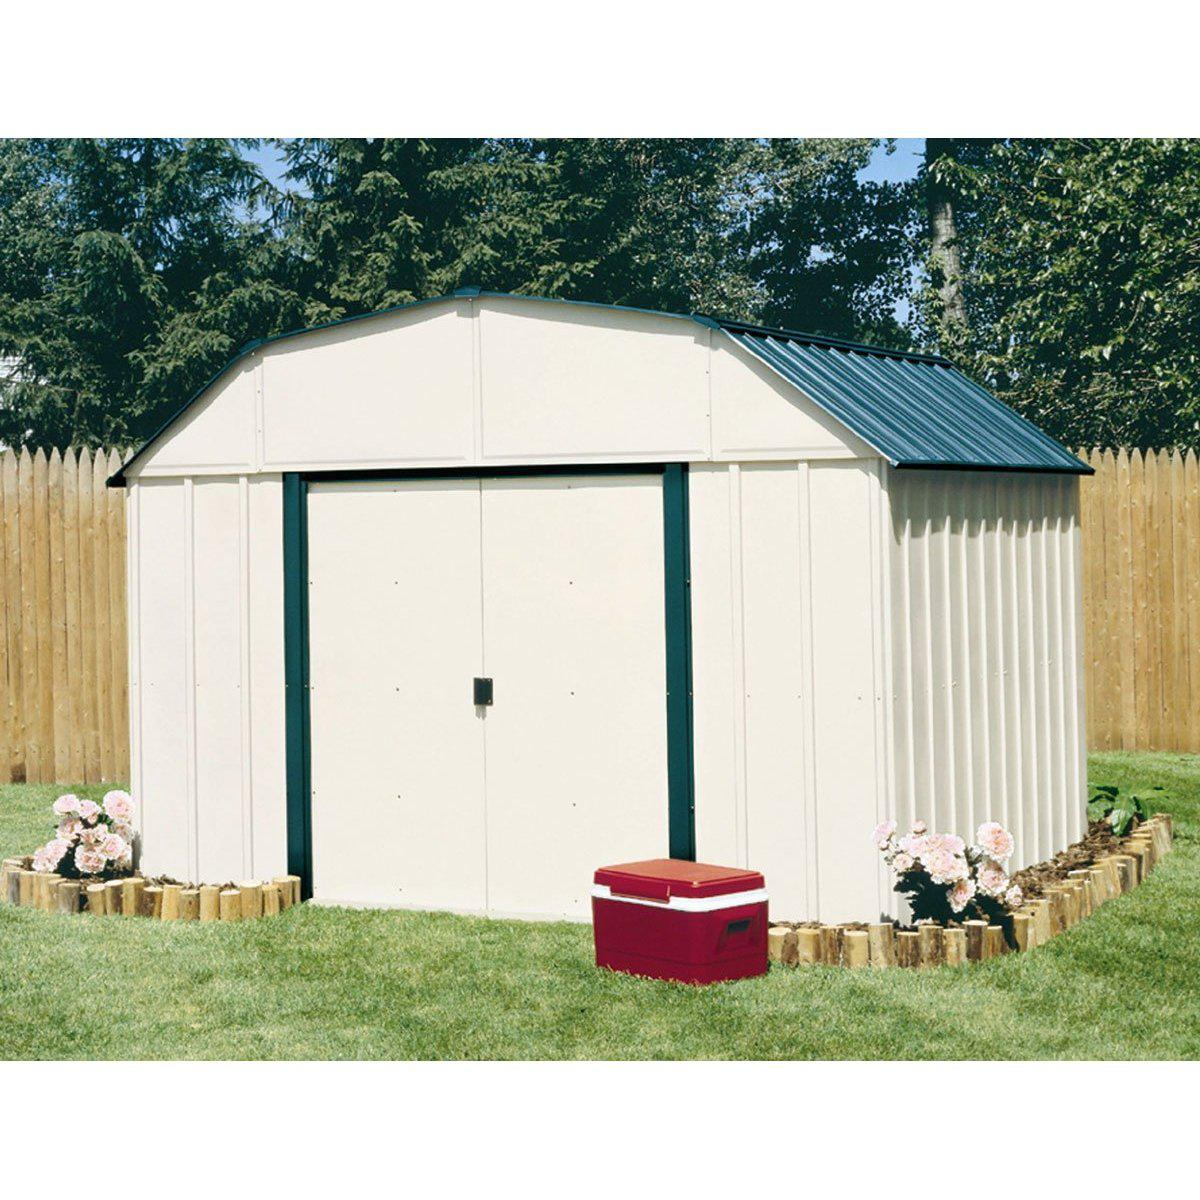 Arrow Vinyl Sheridan Steel Storage Shed, Meadow Green/Almond, 10 x 8 ft.